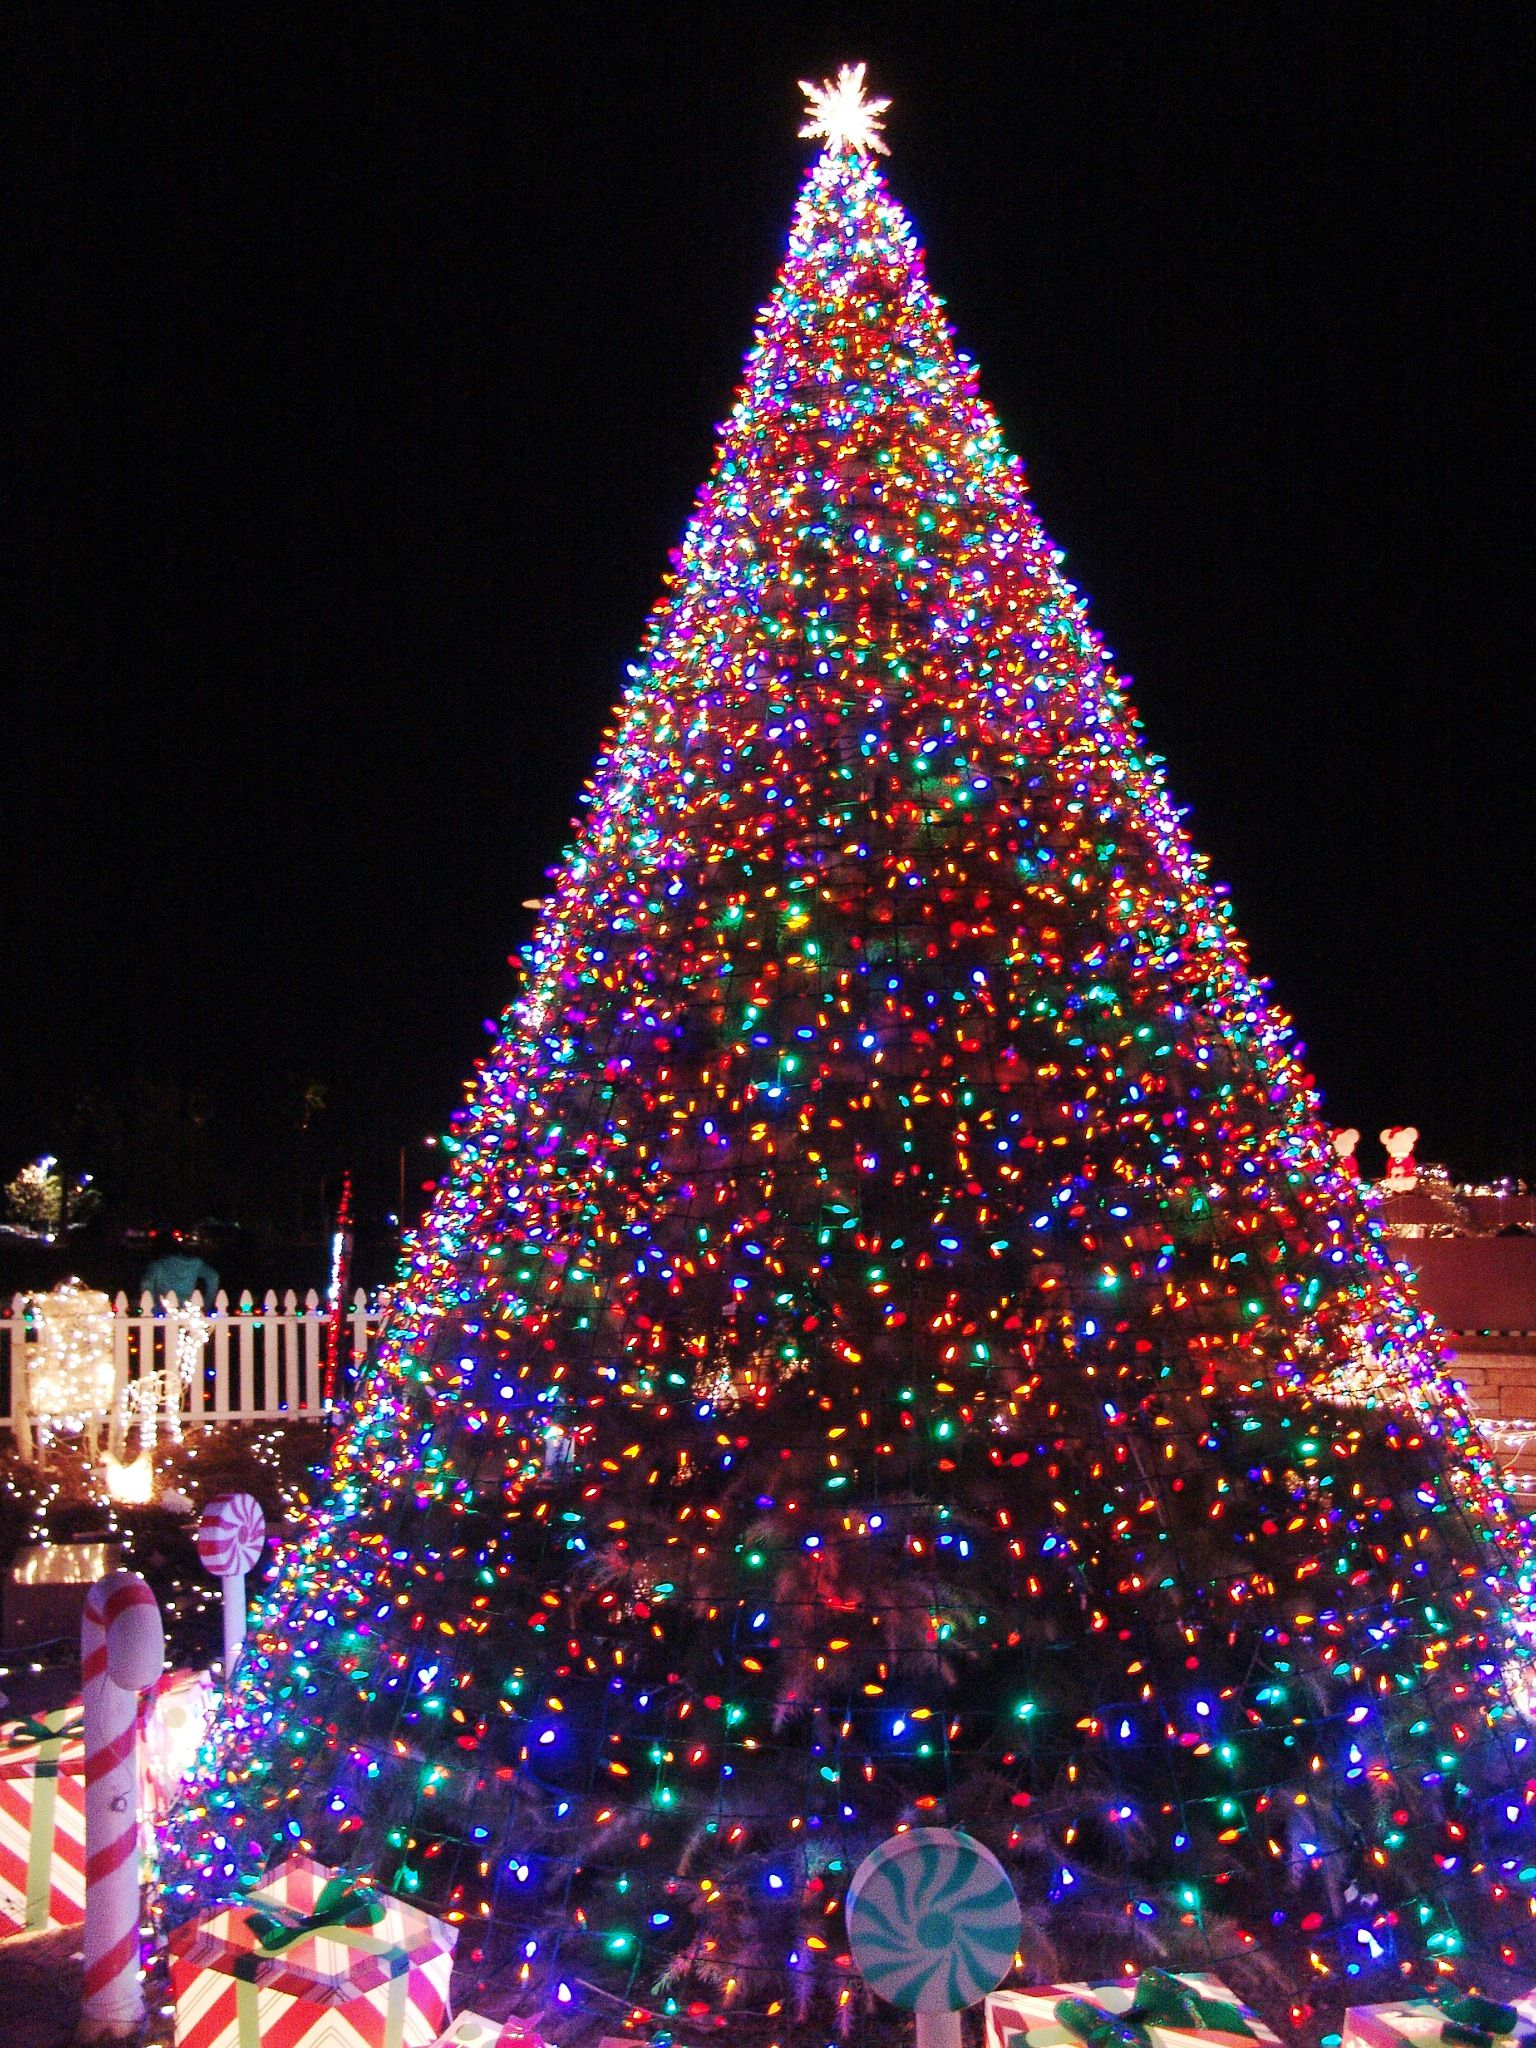 Tree lighting & caroling spectacular! Kick off the